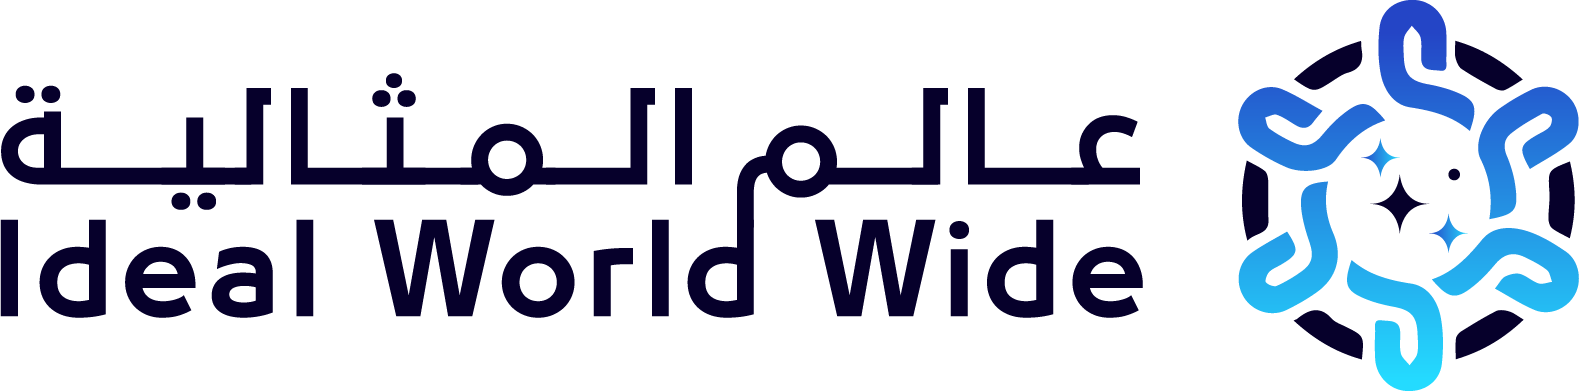 ideal-world-wide-logo